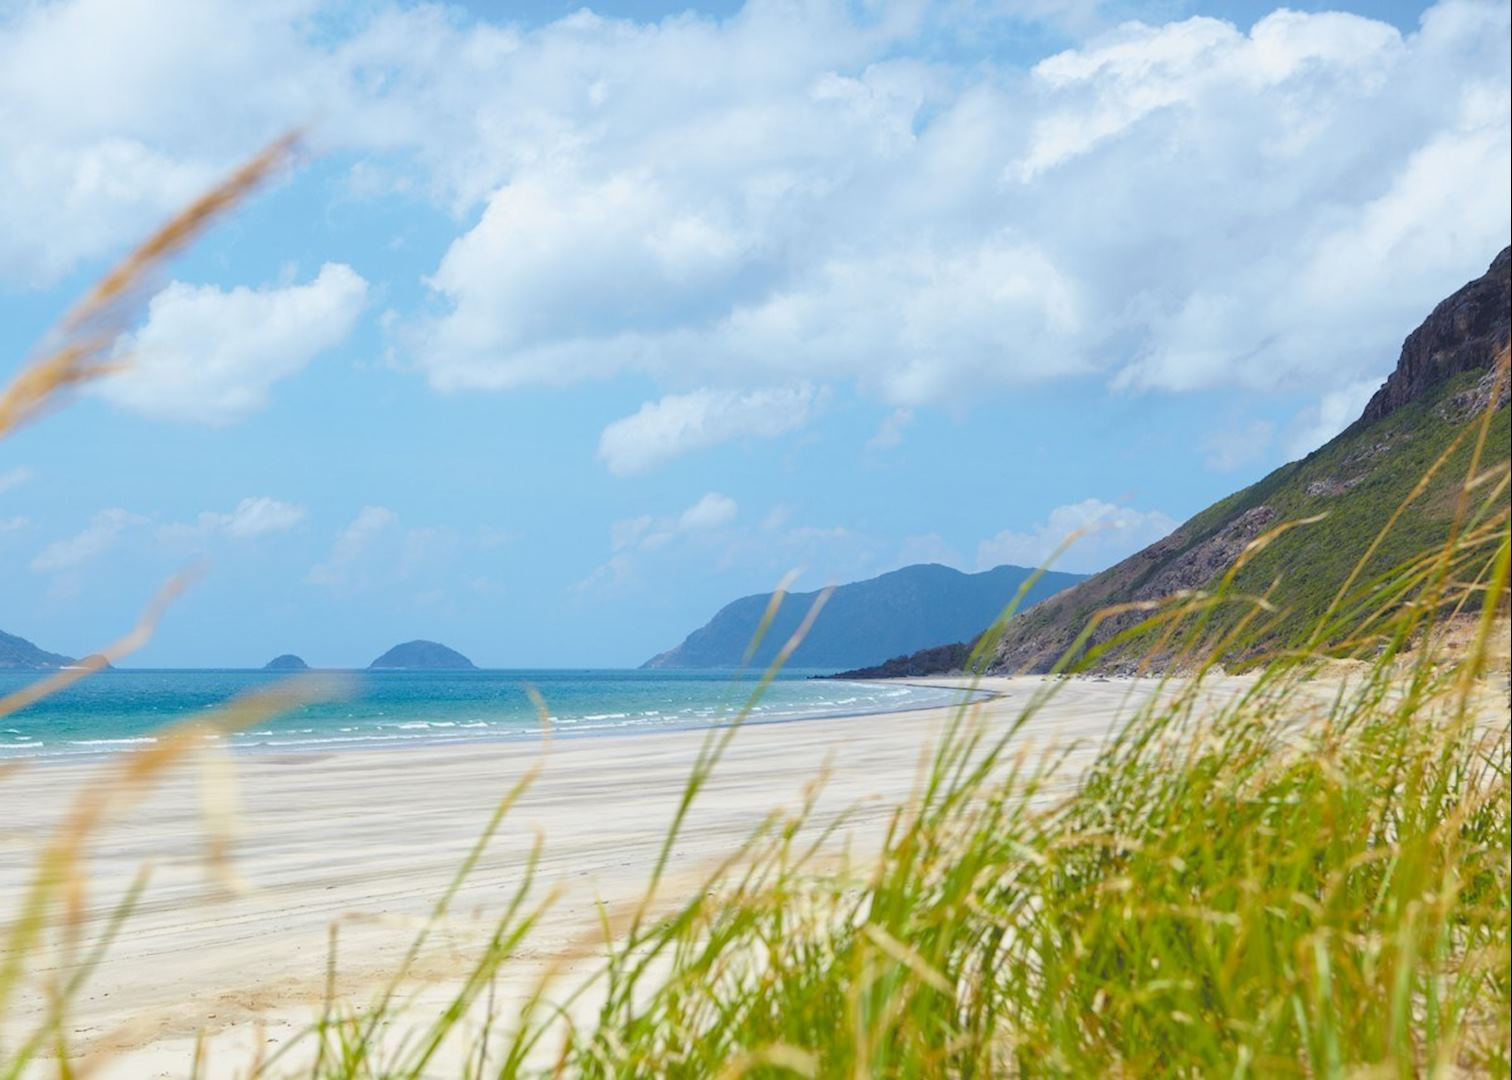 Visit Con Dao Islands on a trip to Vietnam | Audley Travel